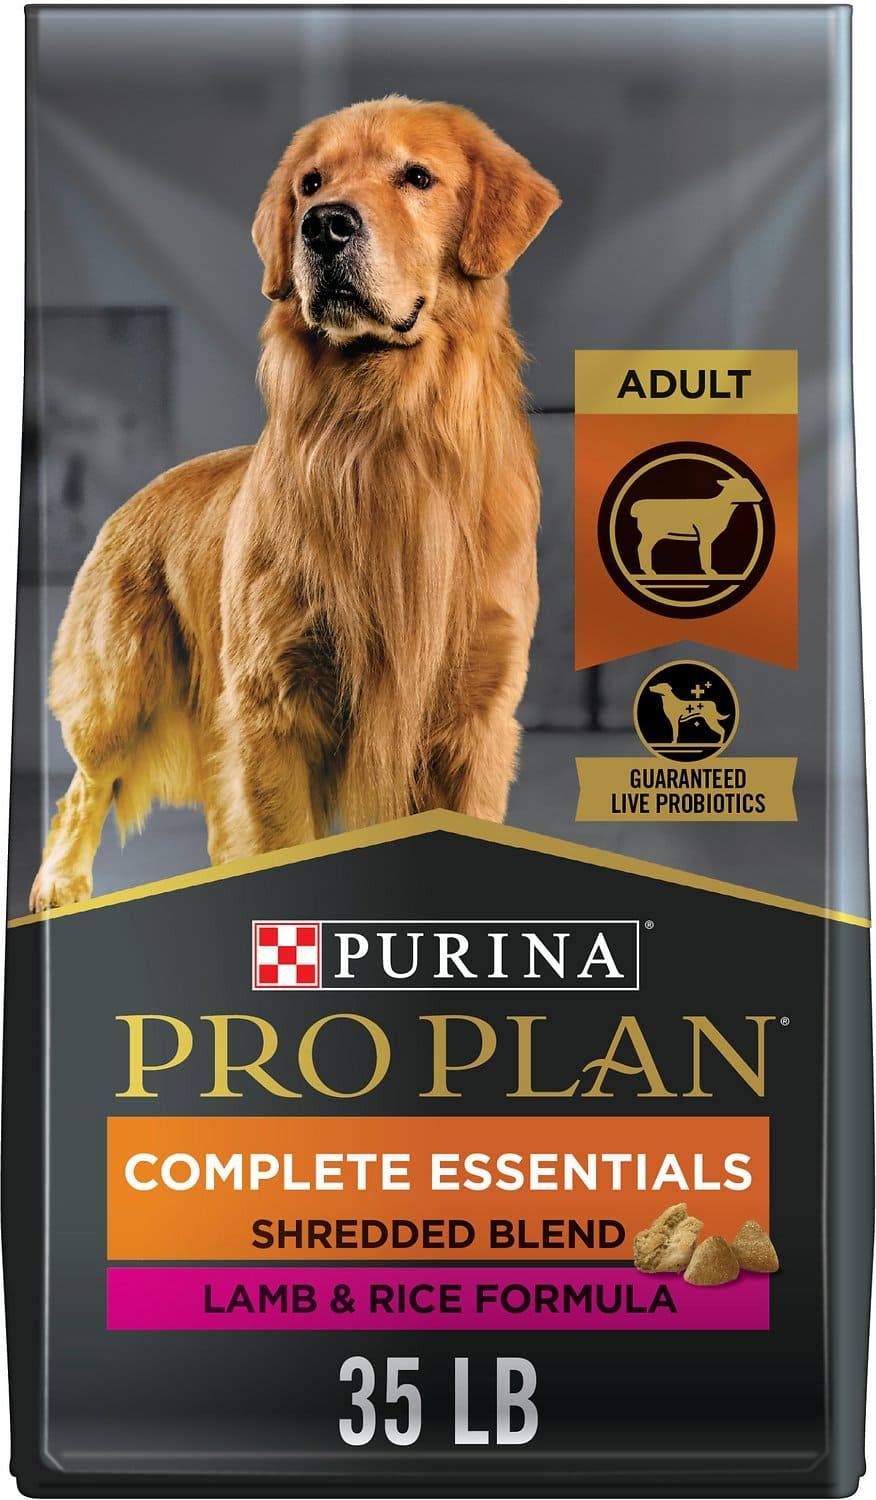 Purina Pro Plan Adult Complete Essentials Shredded Blend Formula for Dogs 35 lbs Lamb & Rice 1